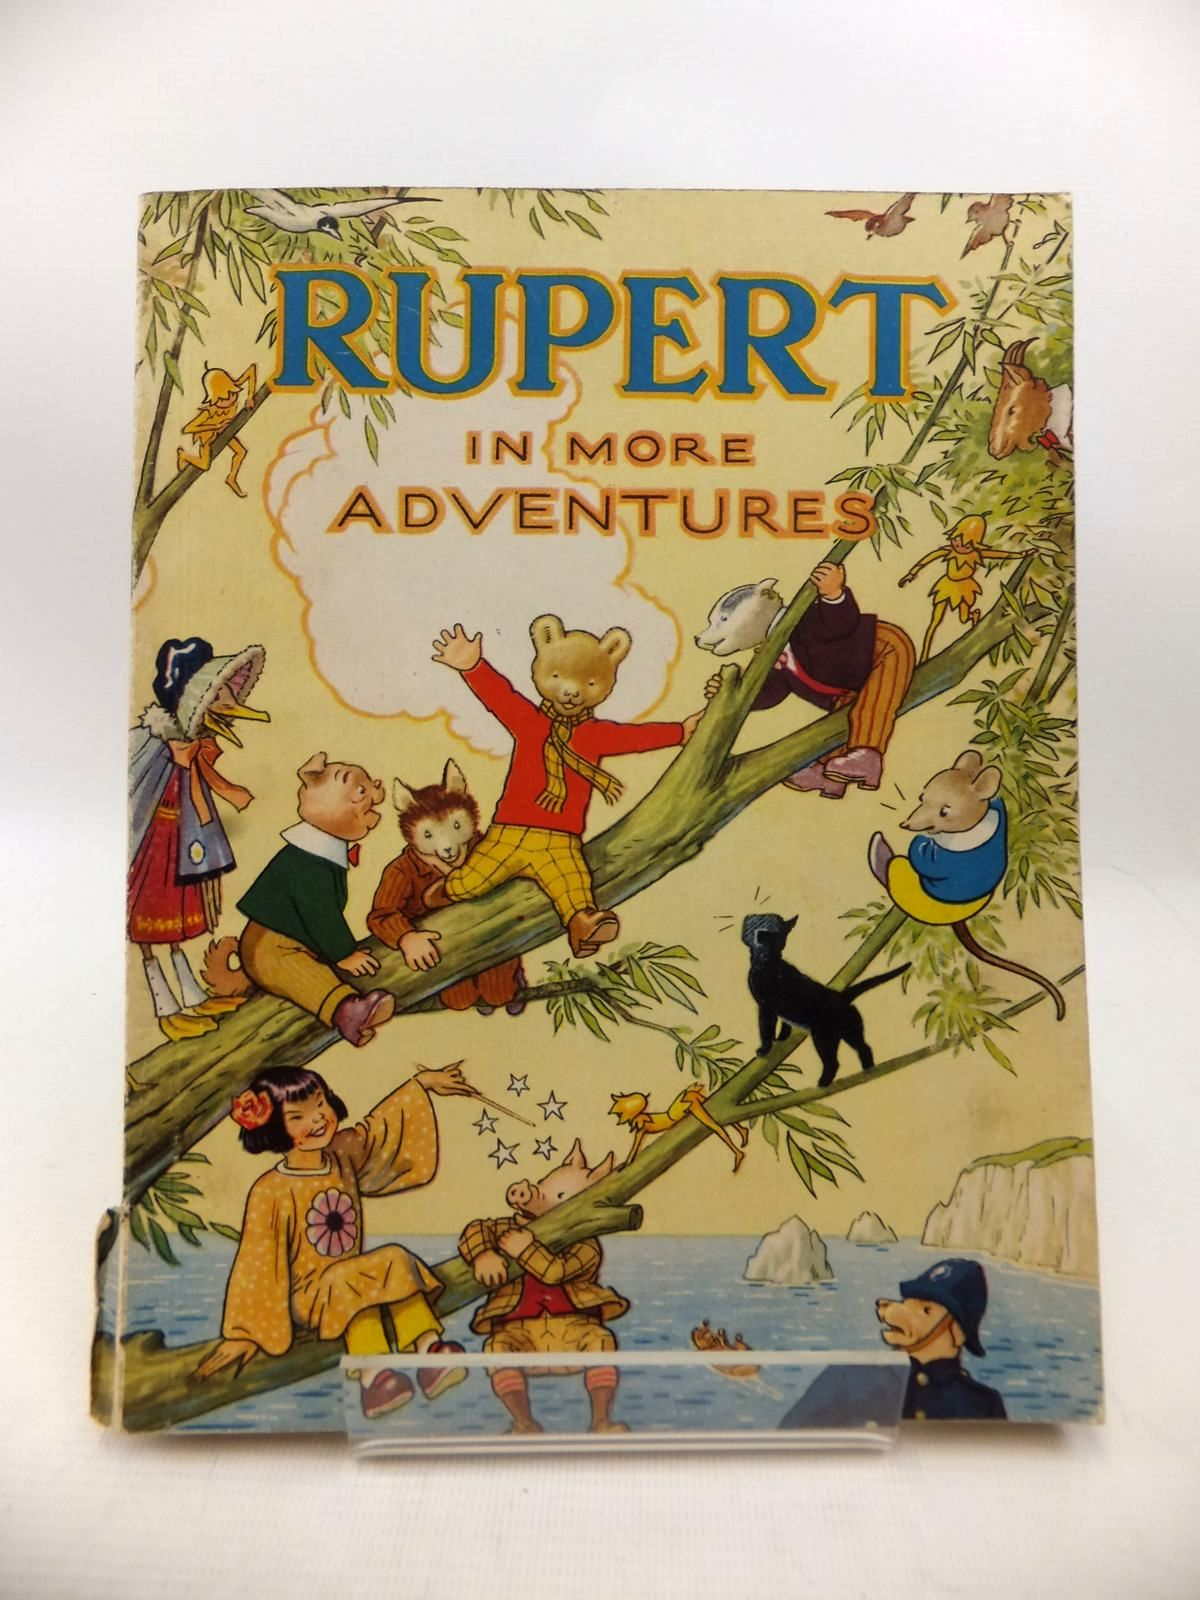 Photo of RUPERT ANNUAL 1944 - RUPERT IN MORE ADVENTURES written by Bestall, Alfred illustrated by Bestall, Alfred published by Daily Express (STOCK CODE: 1813976)  for sale by Stella & Rose's Books